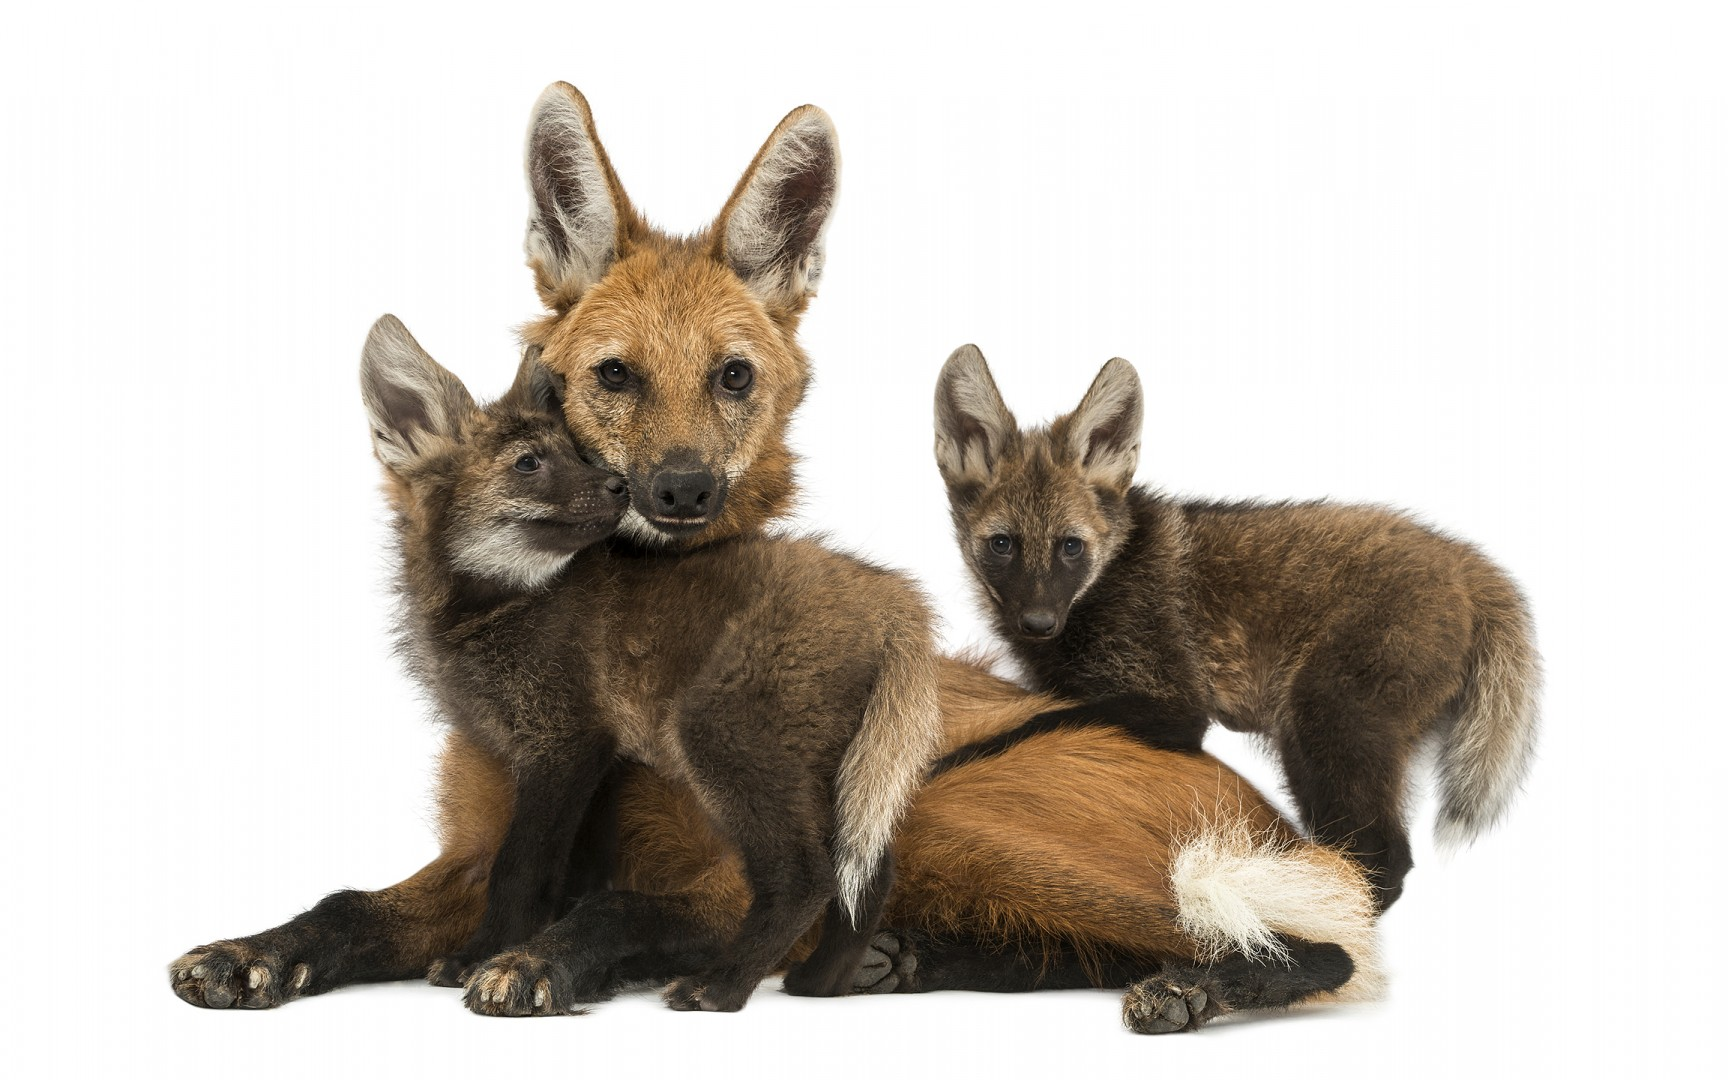 Maned Wolf mom and cubs cuddling - Part of the book Zoo'M : http://goo.gl/g7j31Q